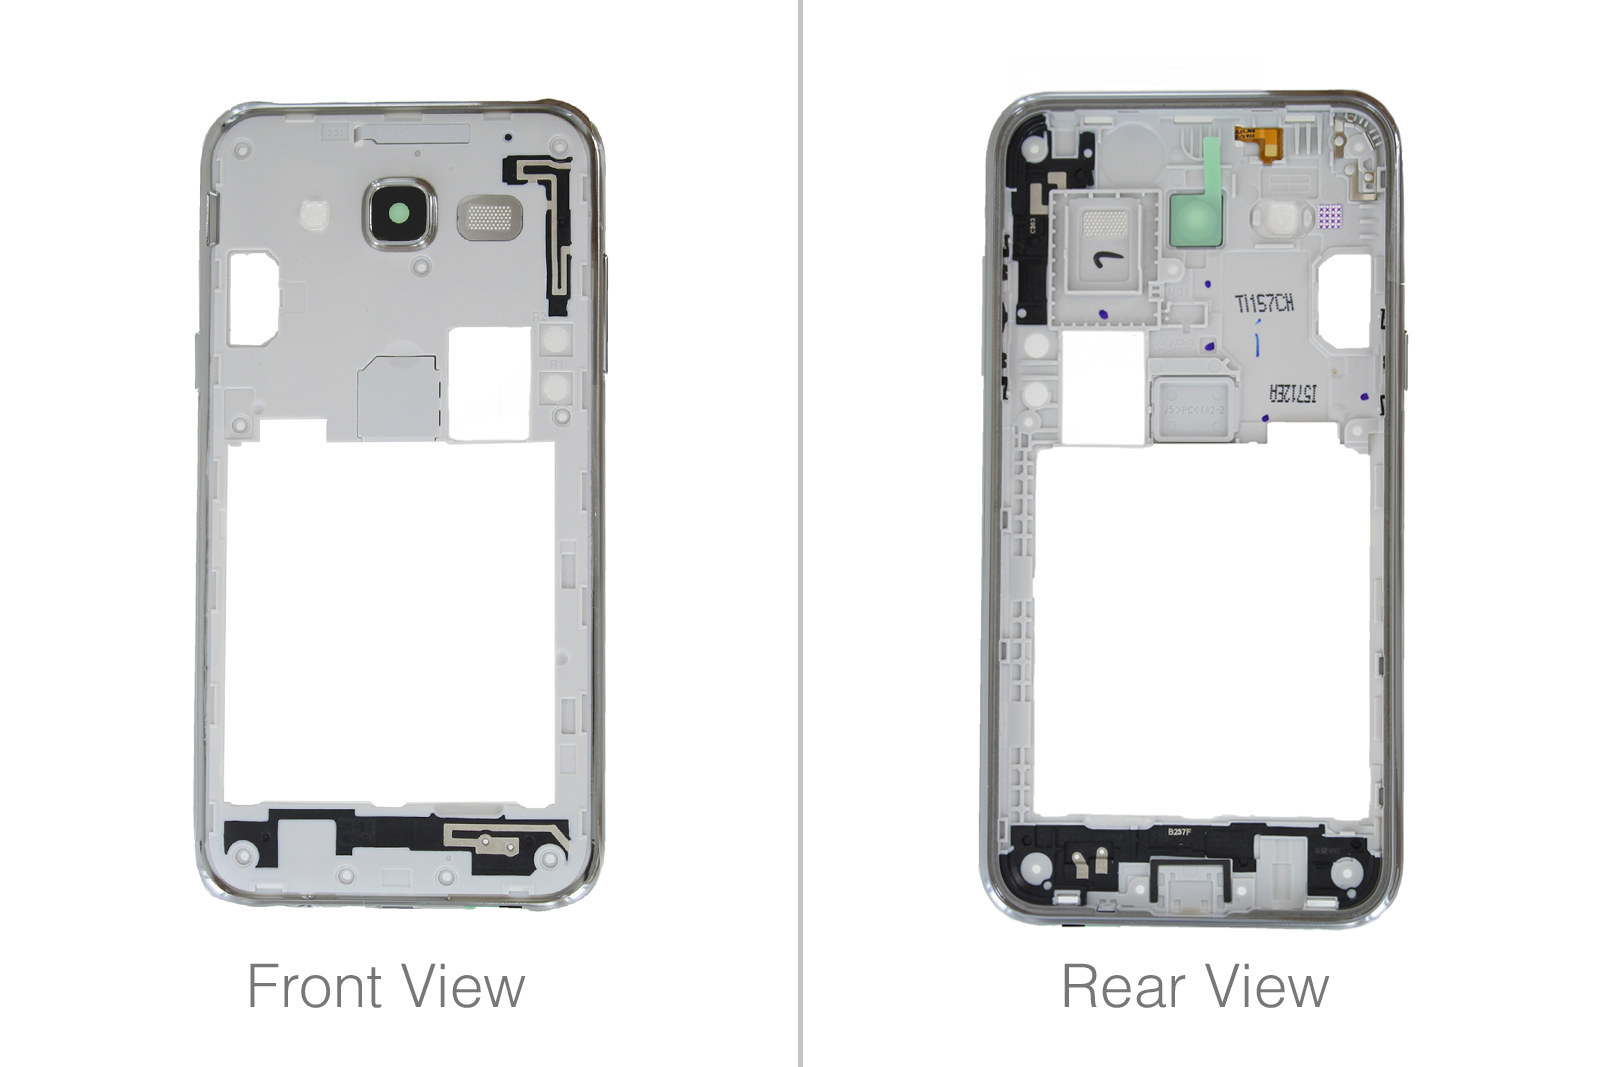 Details about Genuine Samsung Galaxy J5 SM-J500F White / Gold Chassis /  Middle Frame - GH98-37